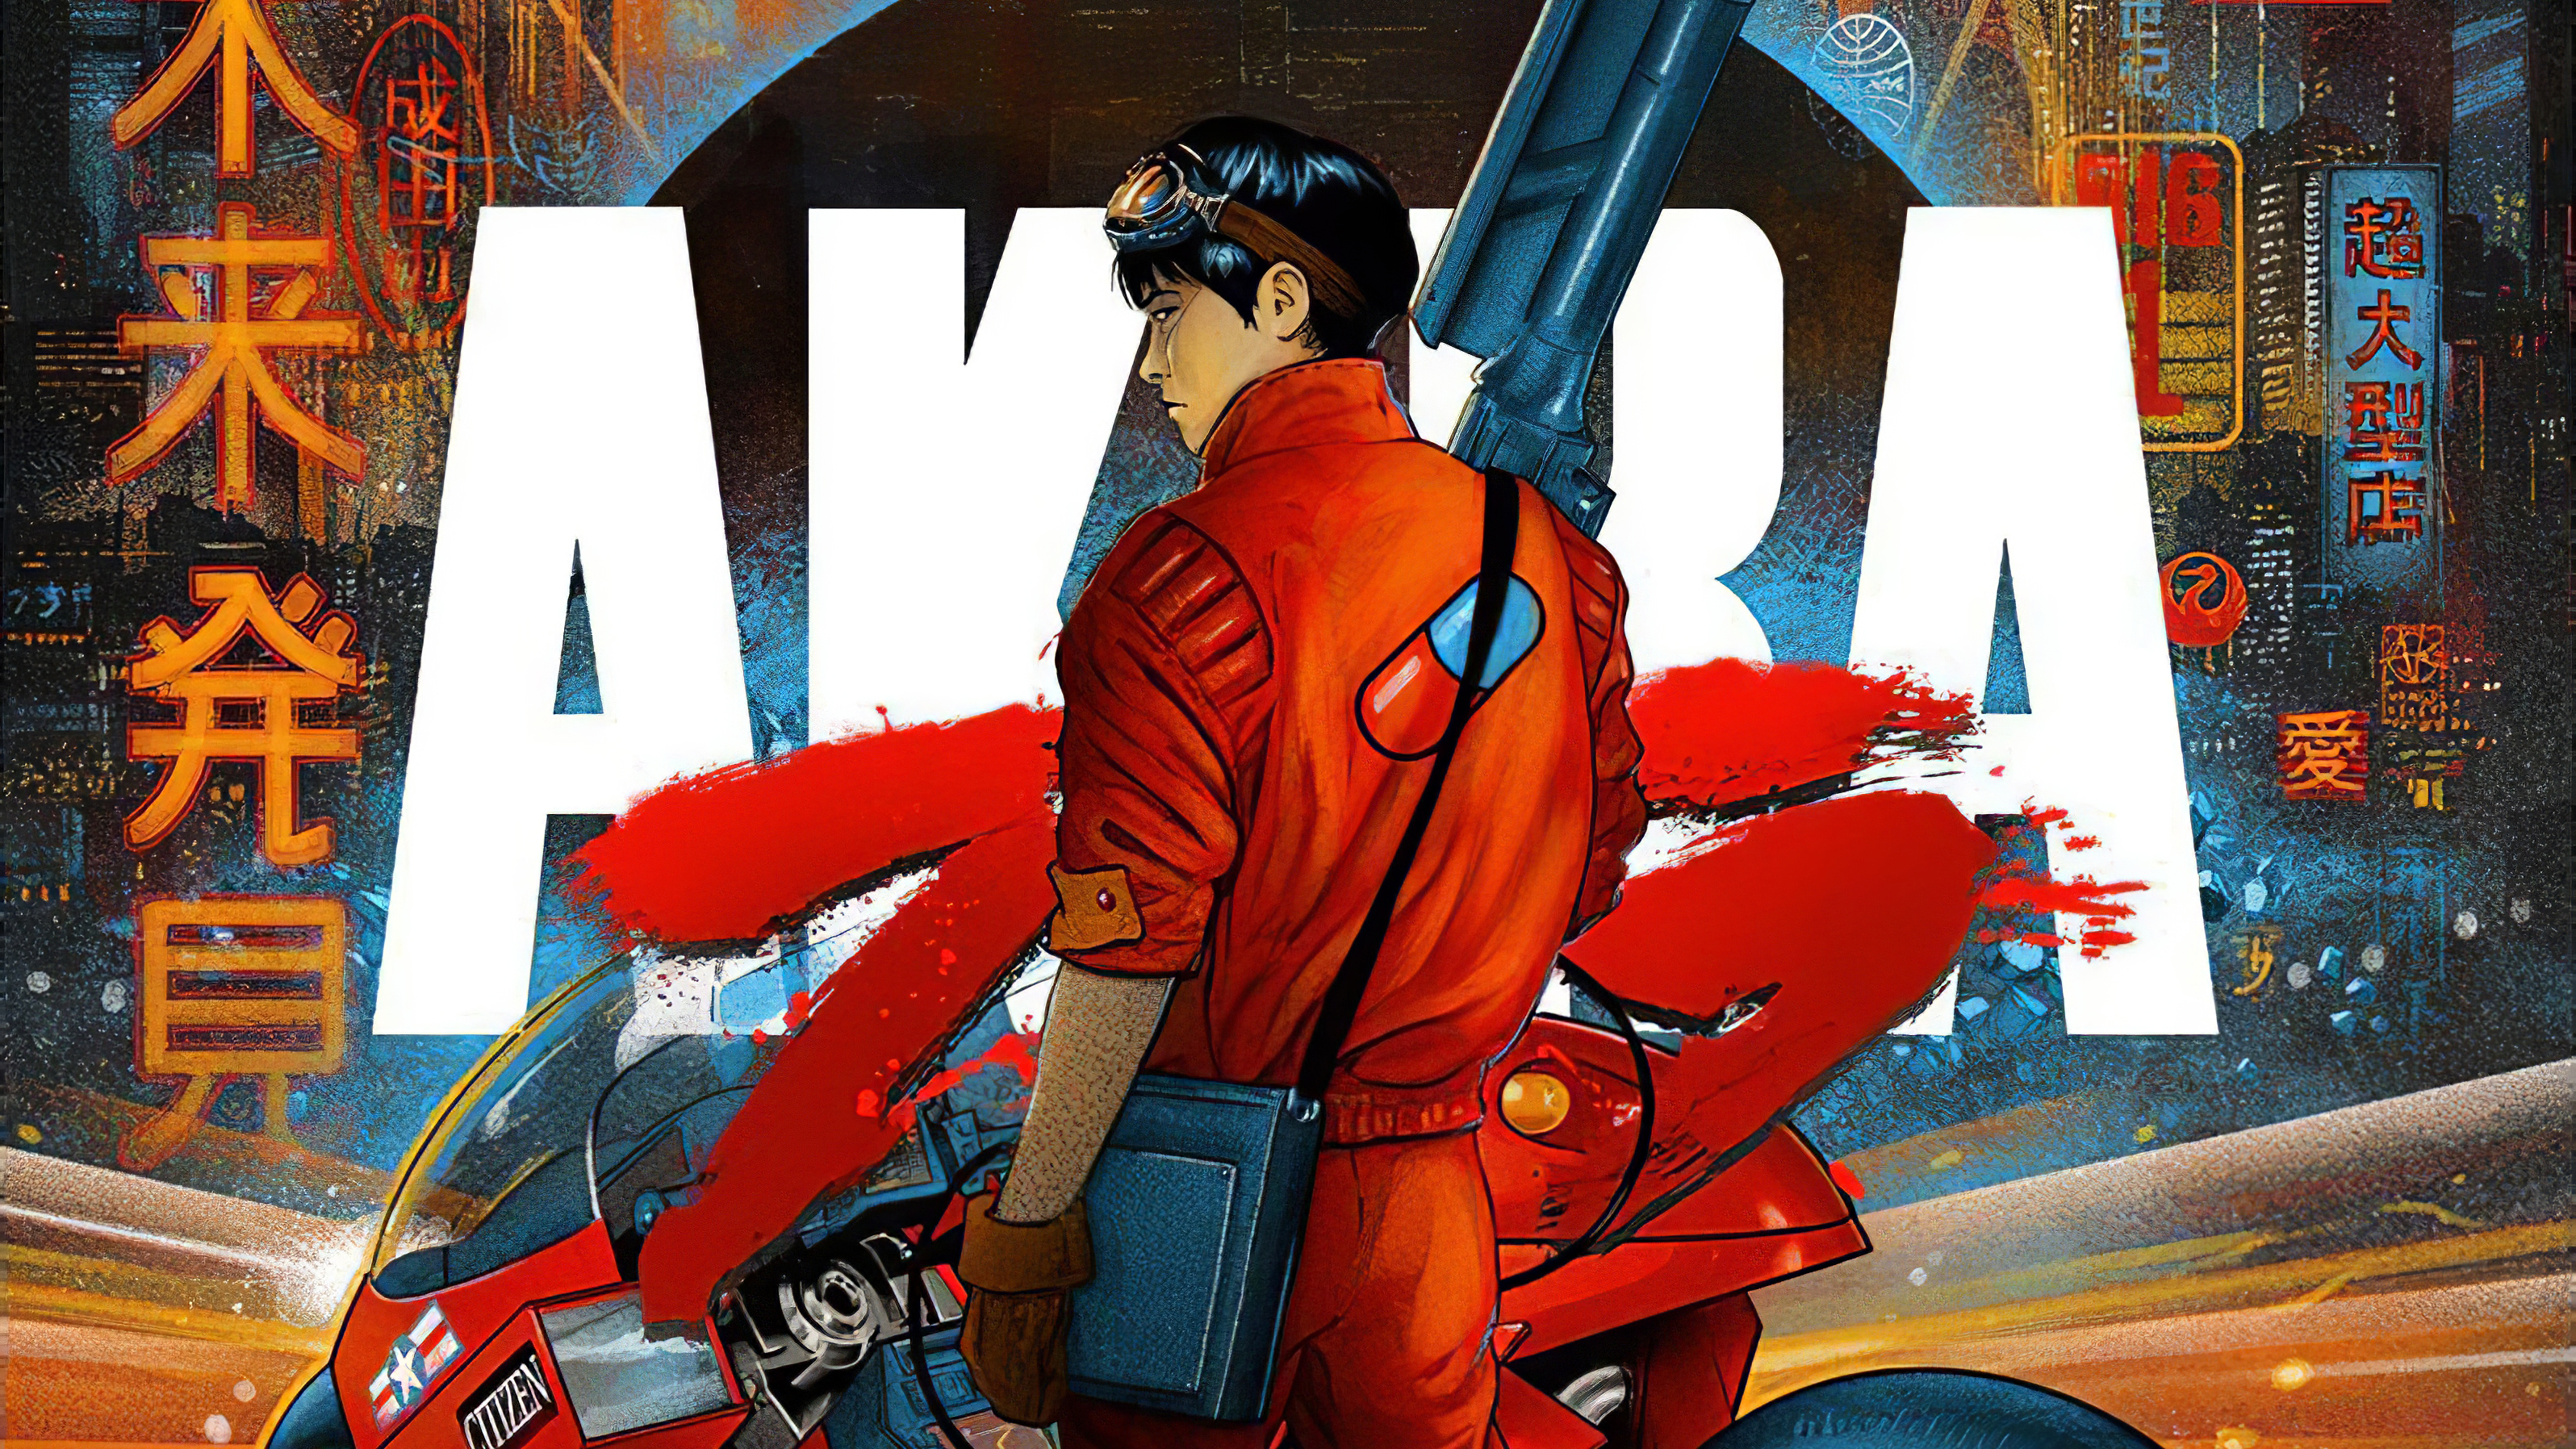 Akira 1988 Hd Movies 4k Wallpapers Images Backgrounds Photos And Pictures